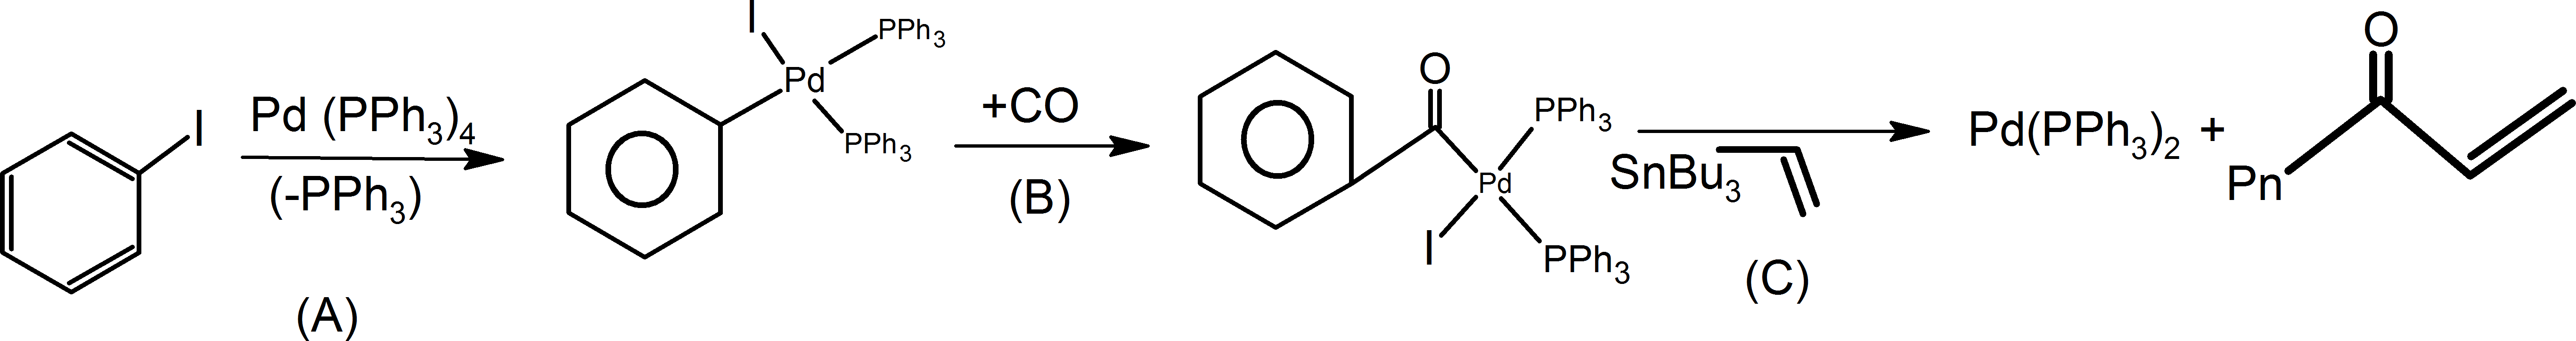 Finding A, B and C in the concentric reaction